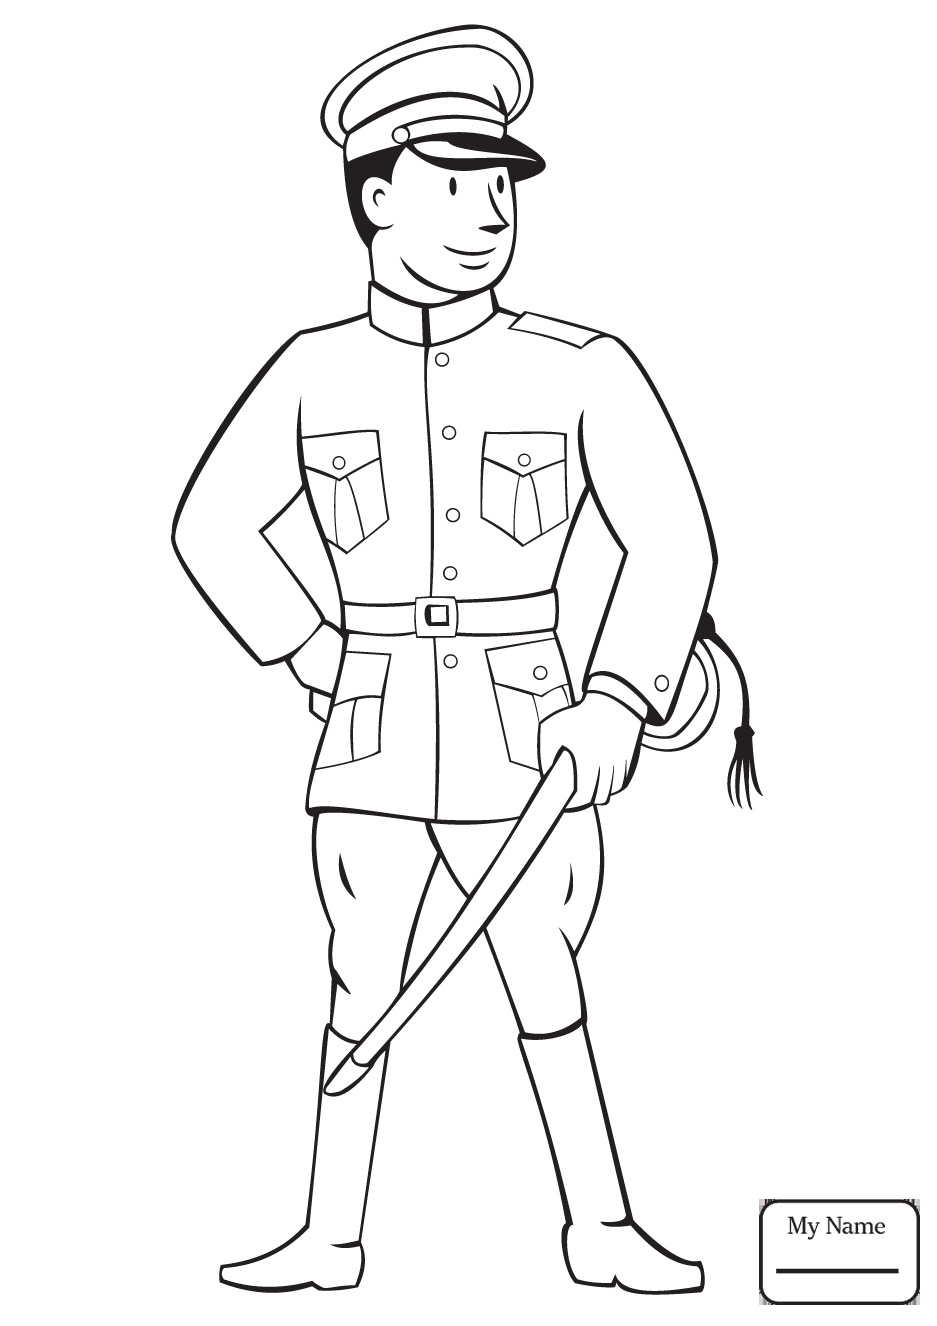 937x1326 Military Anzac Soldier Soldiers Coloring Pages For Kids